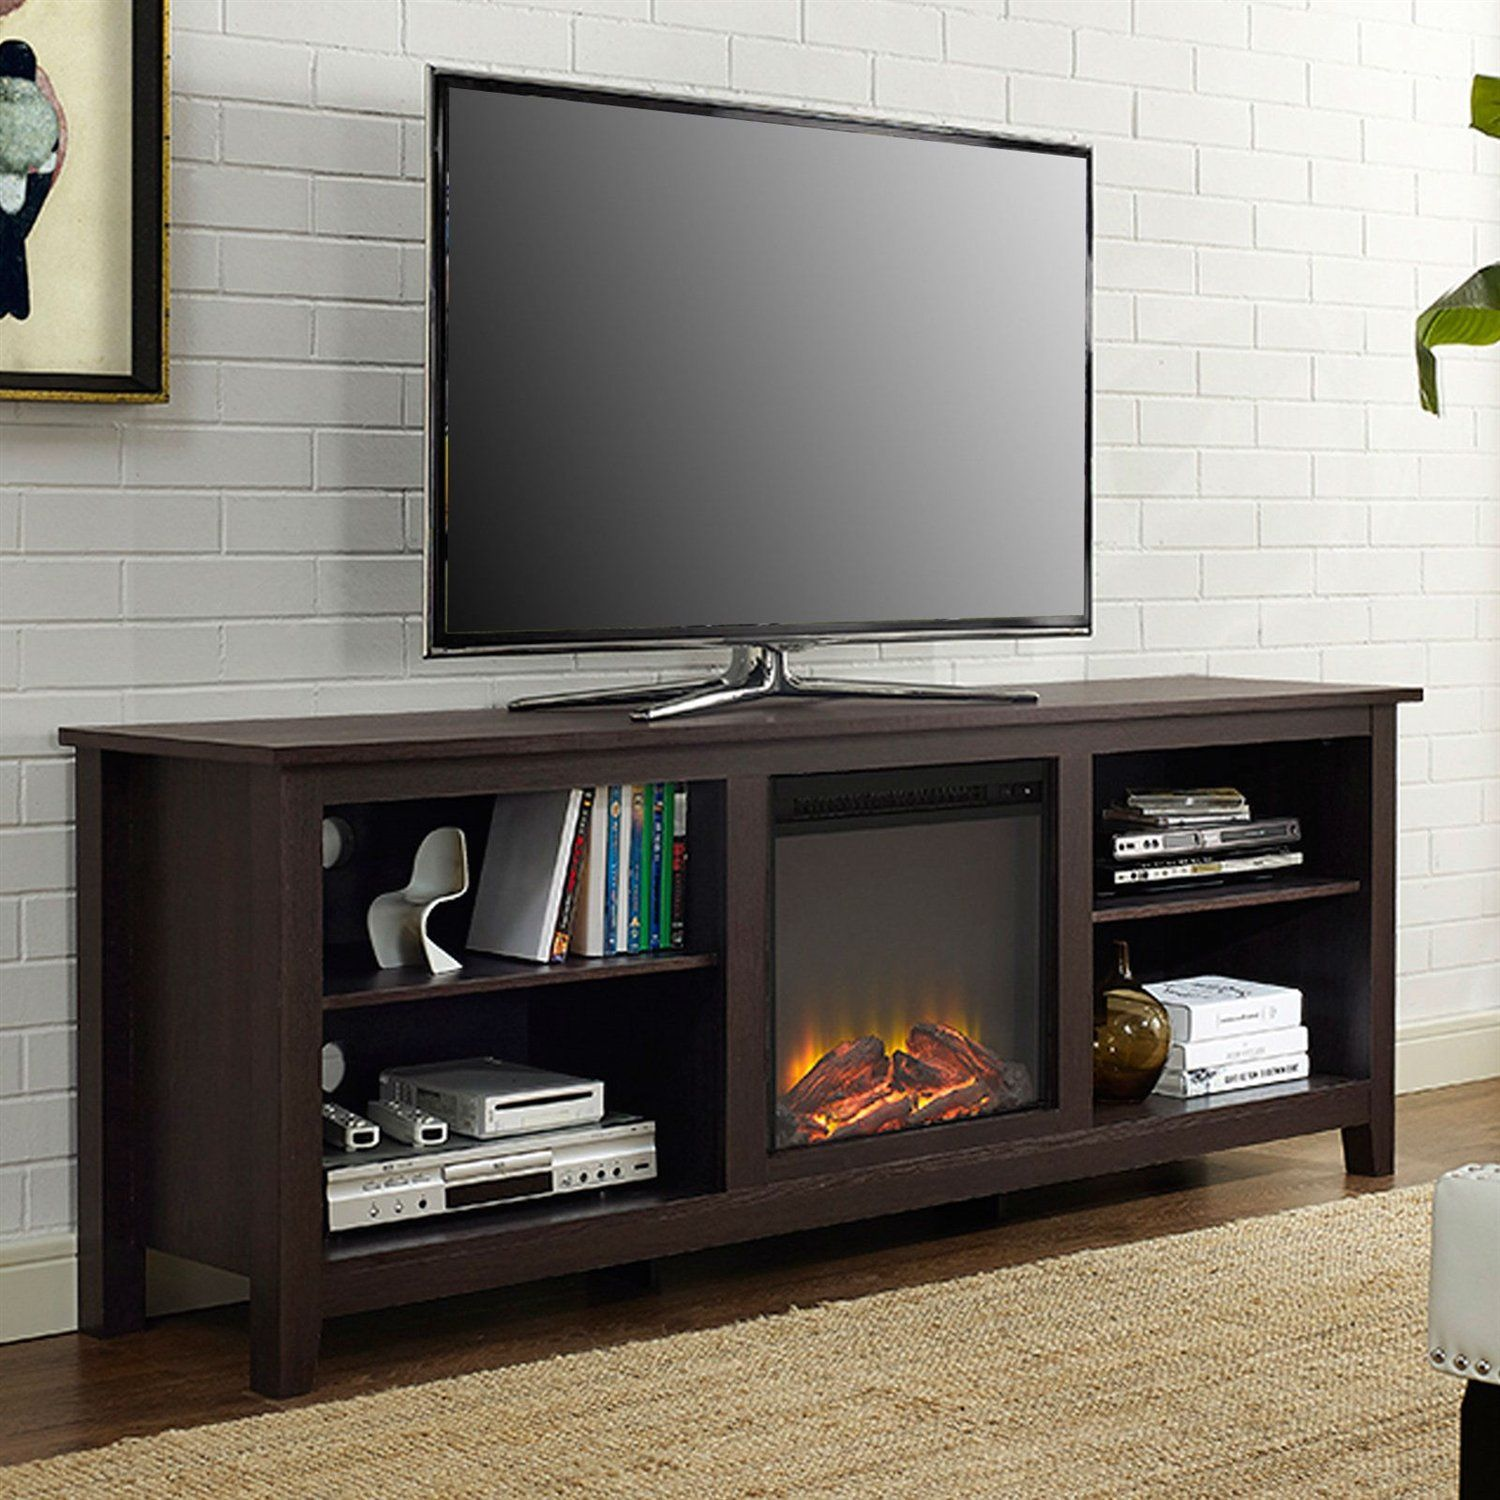 espresso 70 inch electric fireplace tv stand space heater products rh pinterest cl